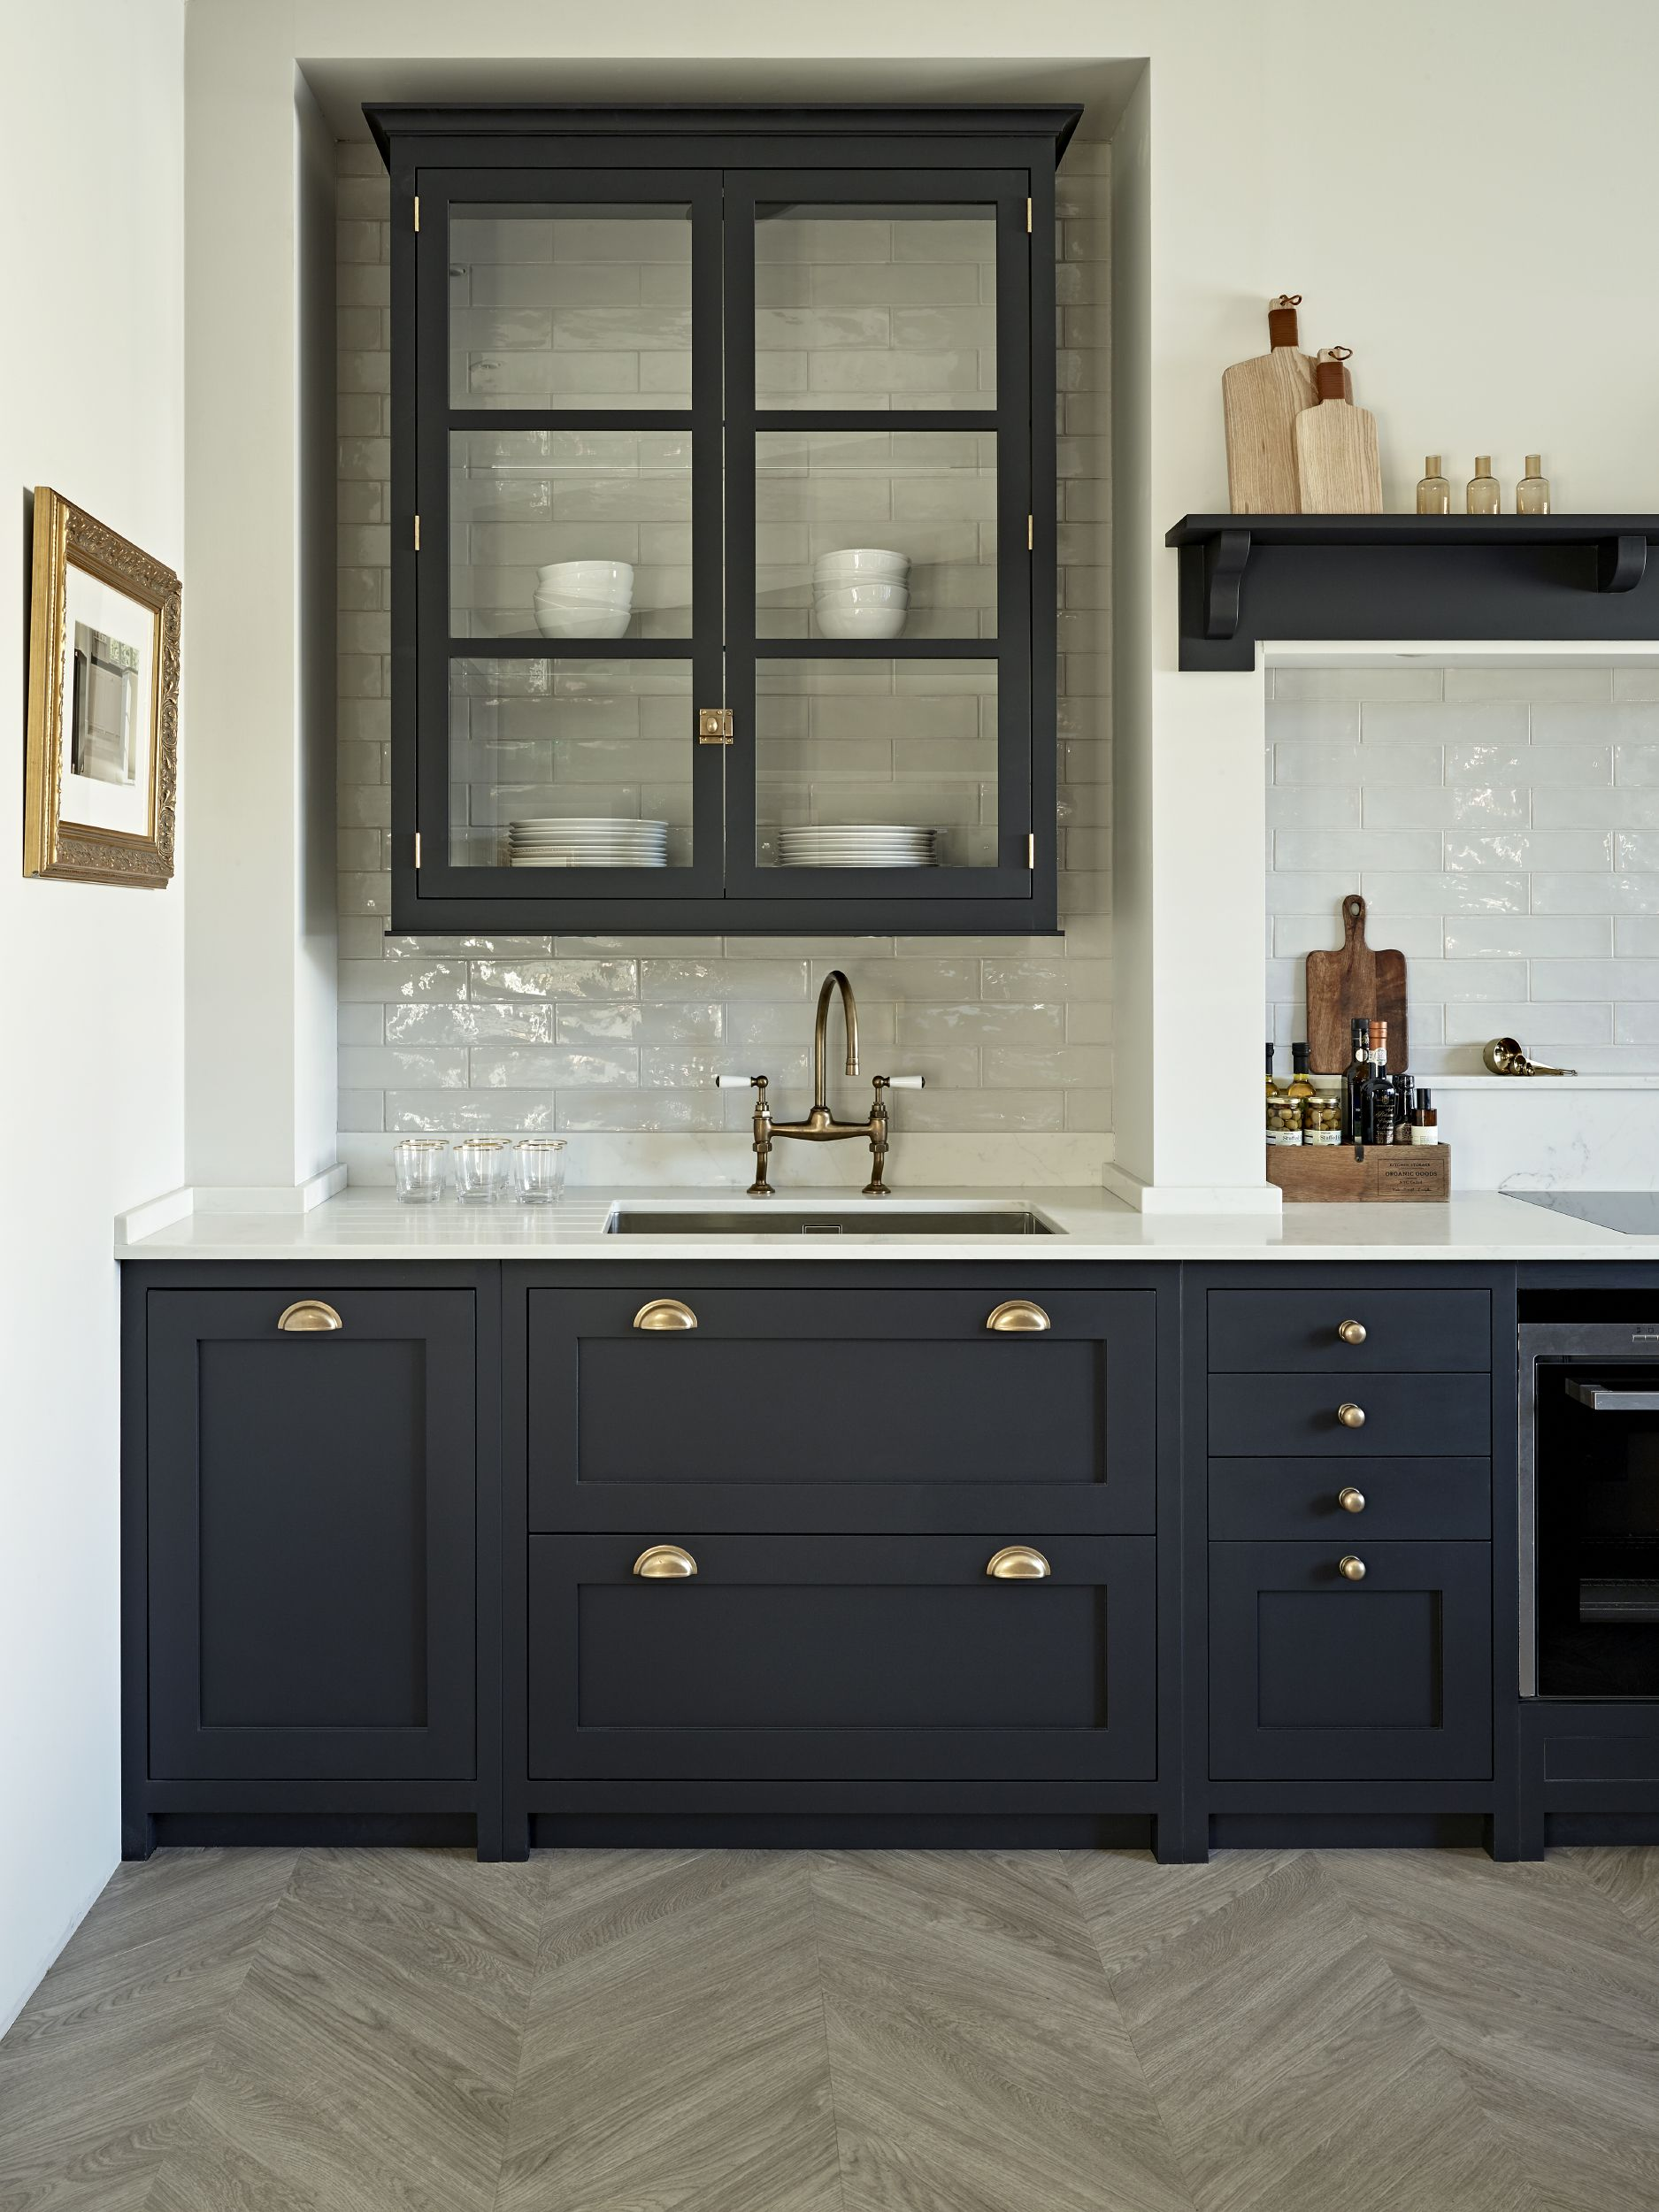 Best Beautiful Bespoke Kitchens Luxury Fitted Furniture In 2019 400 x 300